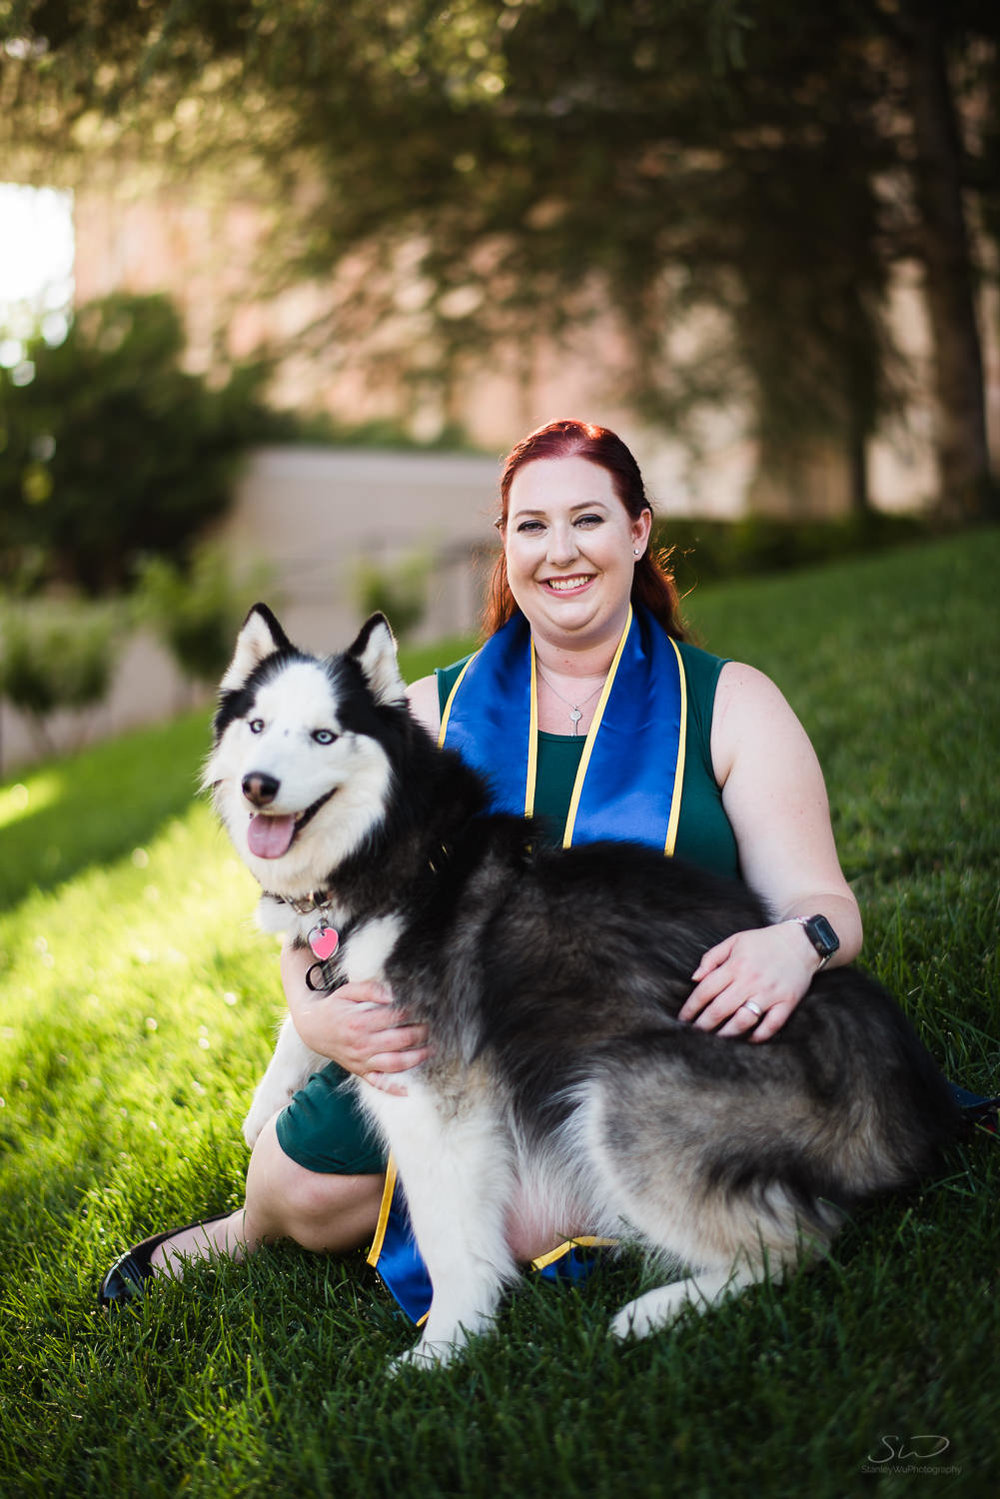 ucla-husky-dog-senior-graduation-portrait-1.jpg